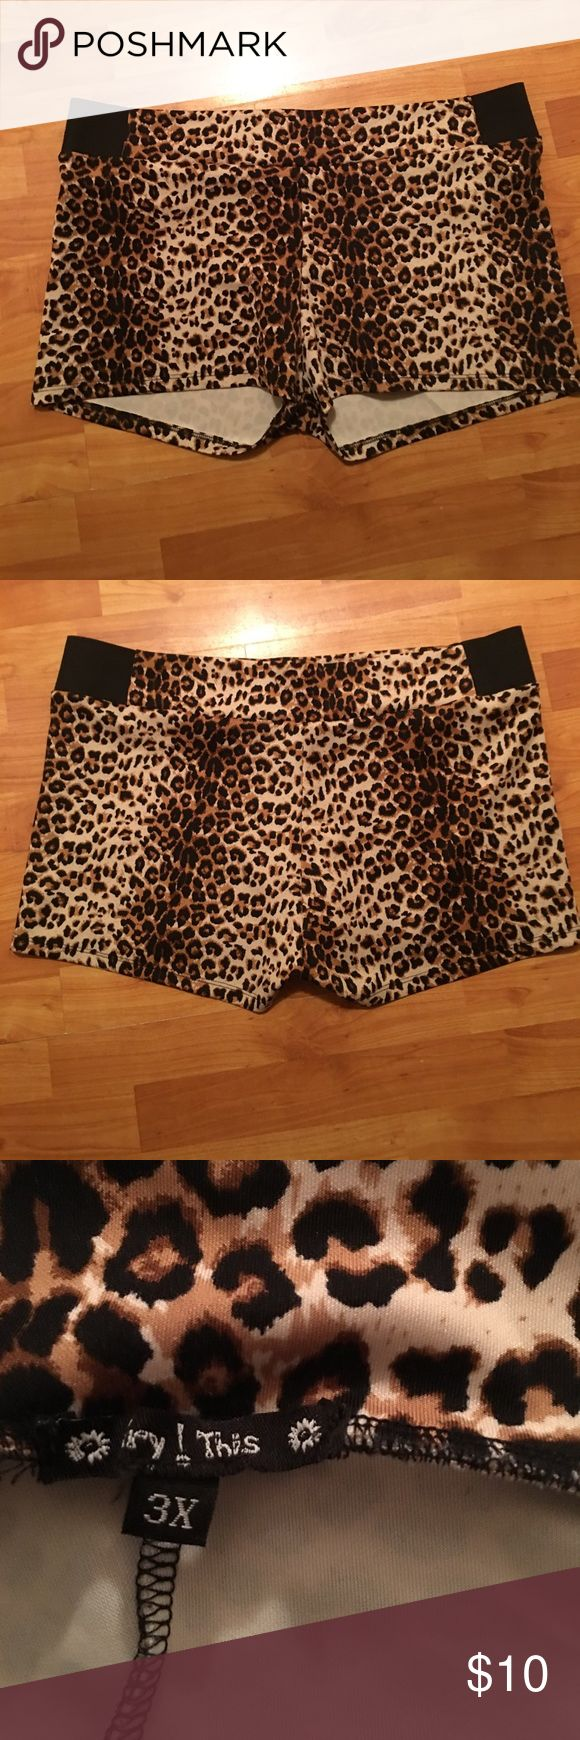 Cheetah Shorts Cheetah shorts in very good shape no snags or tears very stretchy and comfortable Swim Coverups